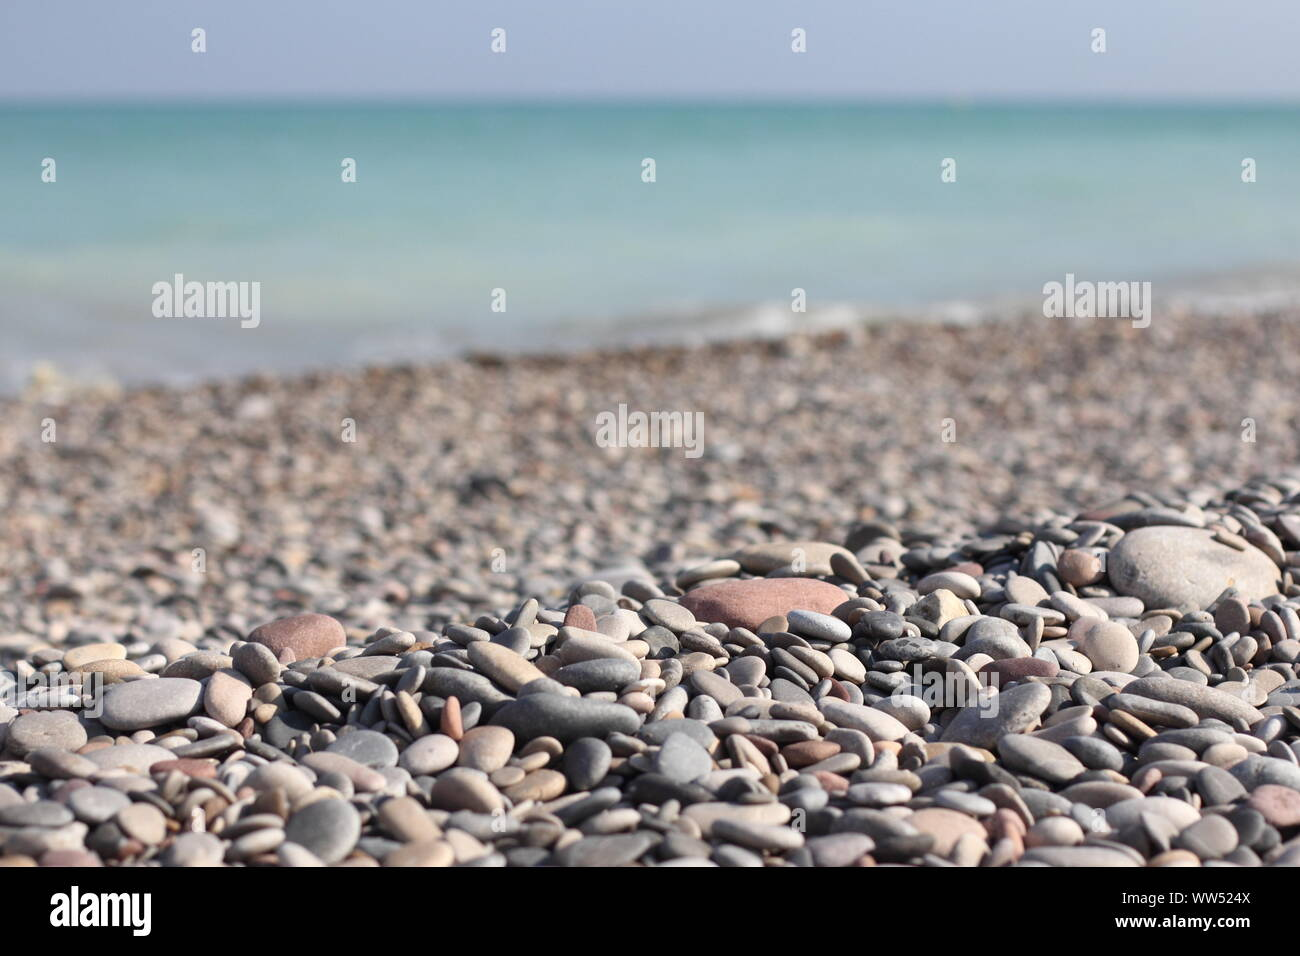 A stony beach on the Spanish coast, Stock Photo